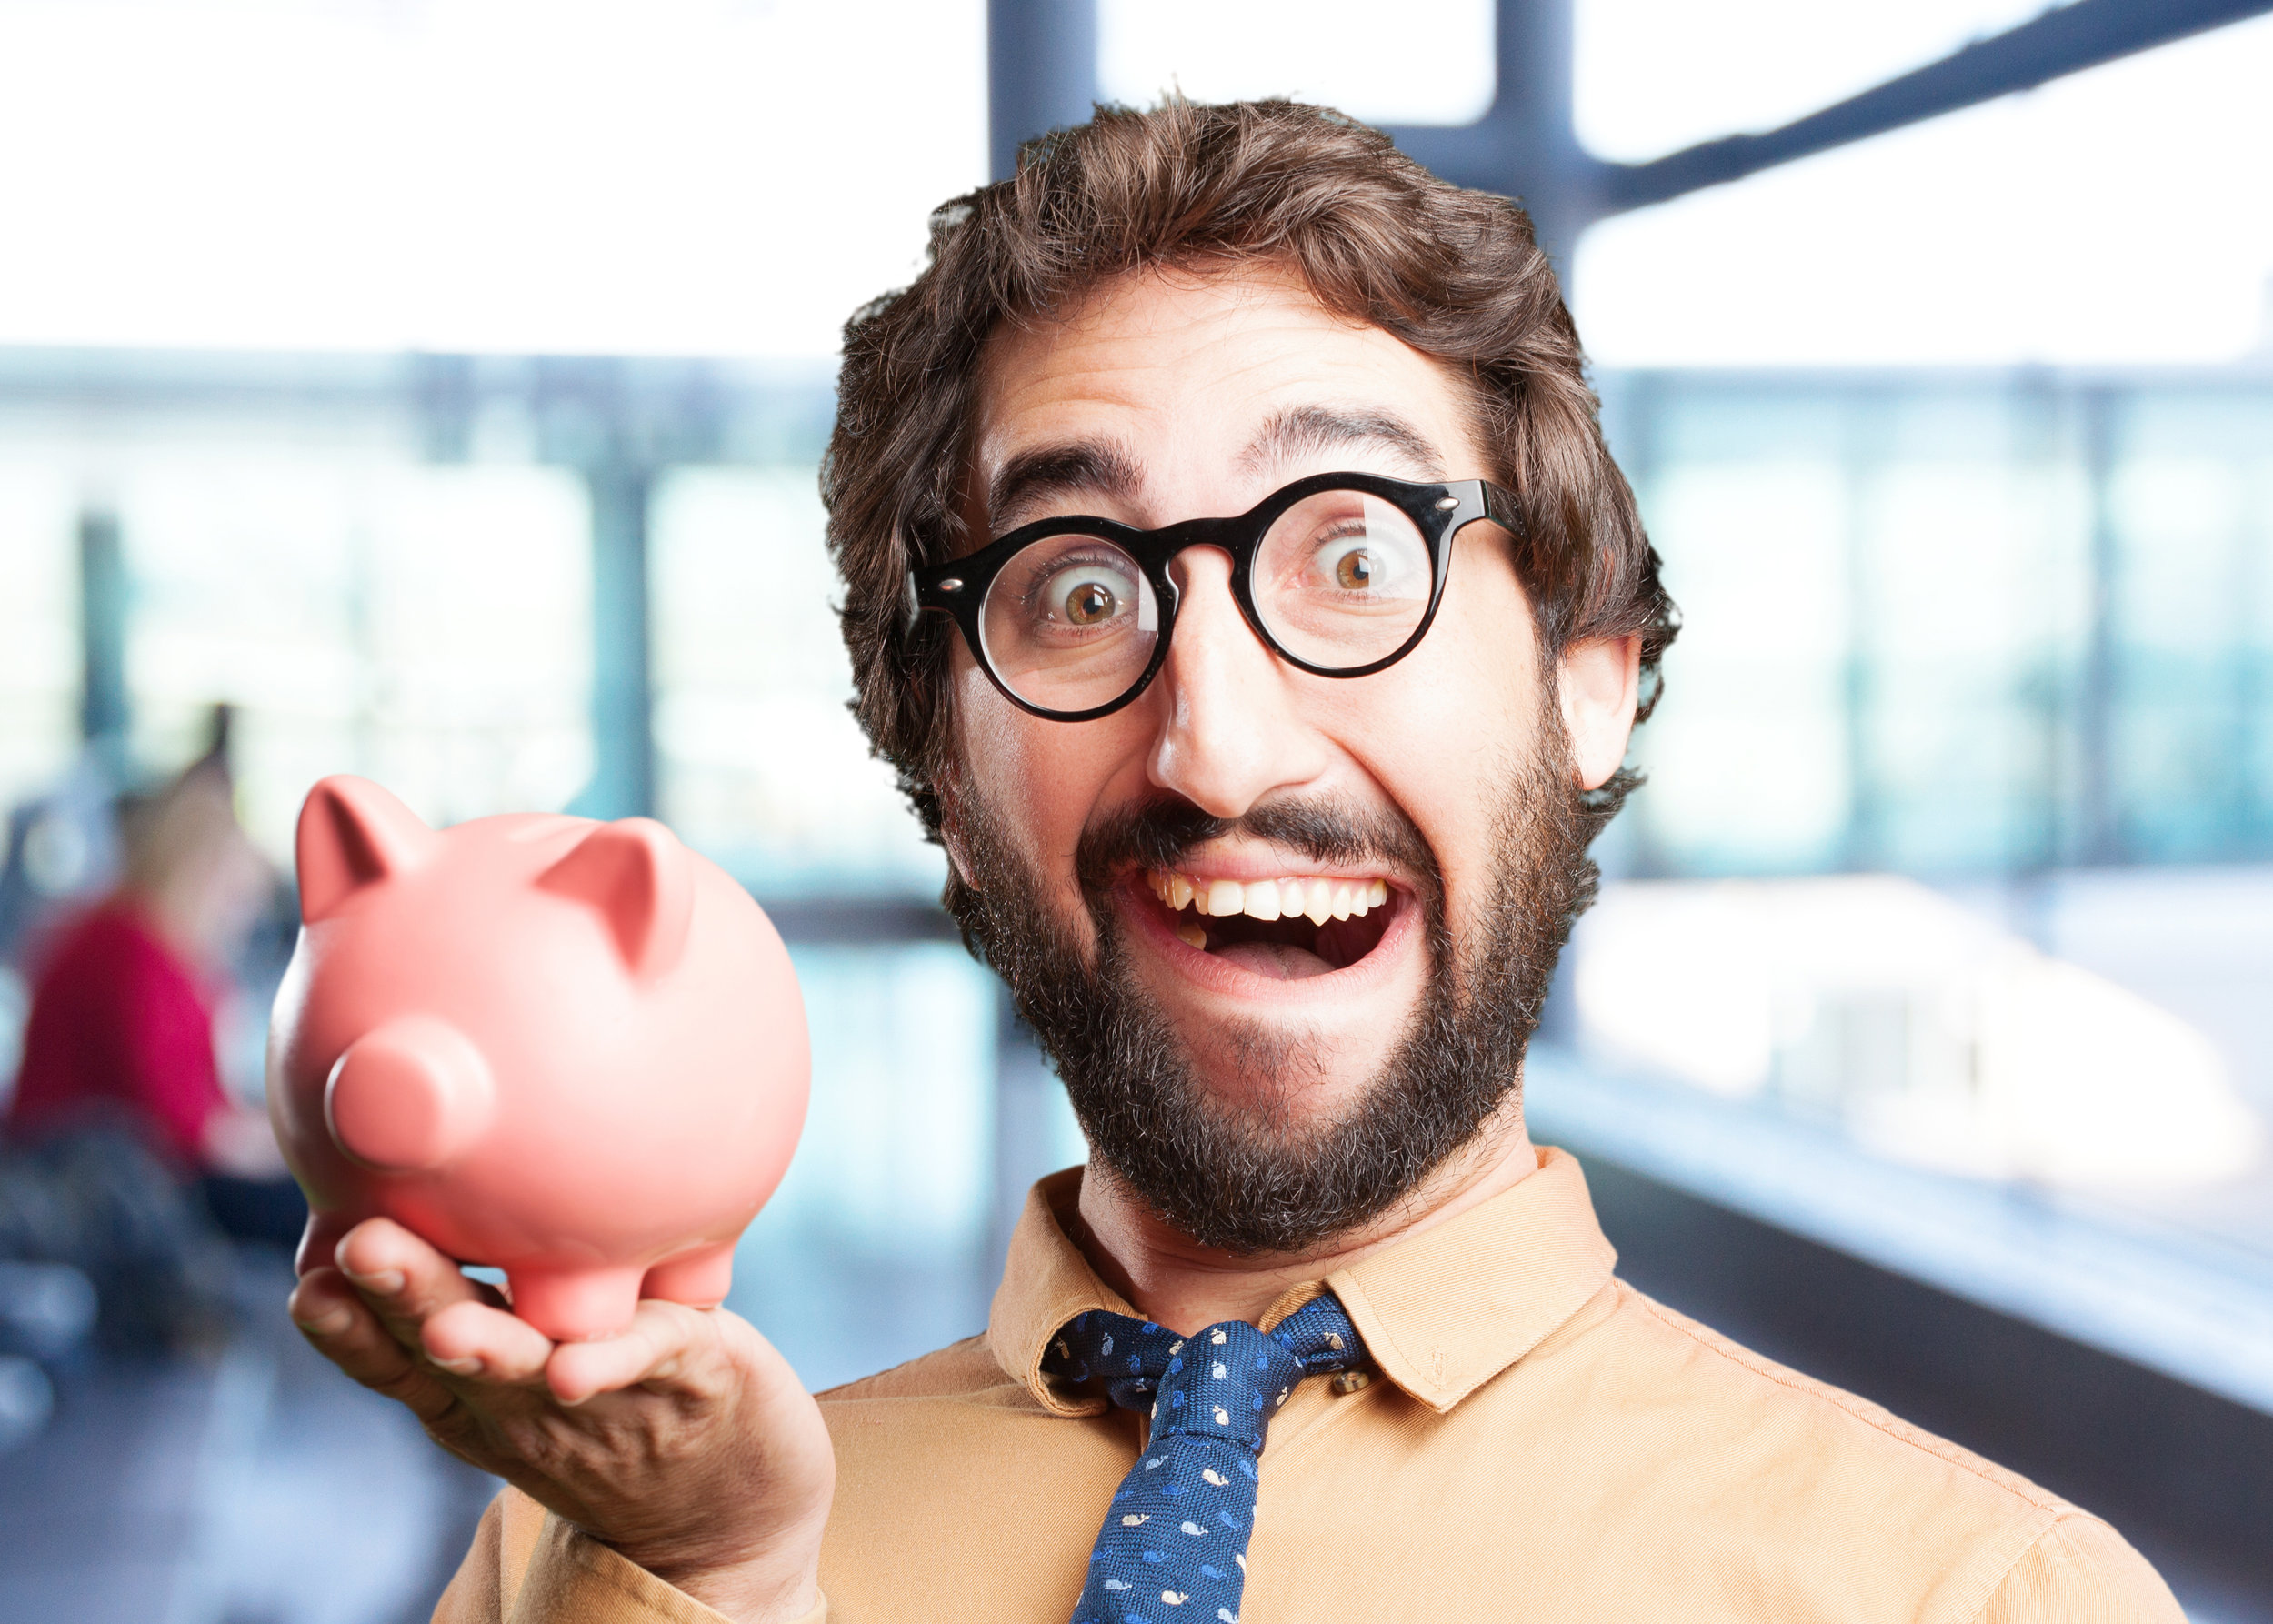 man with piggy bank.jpg